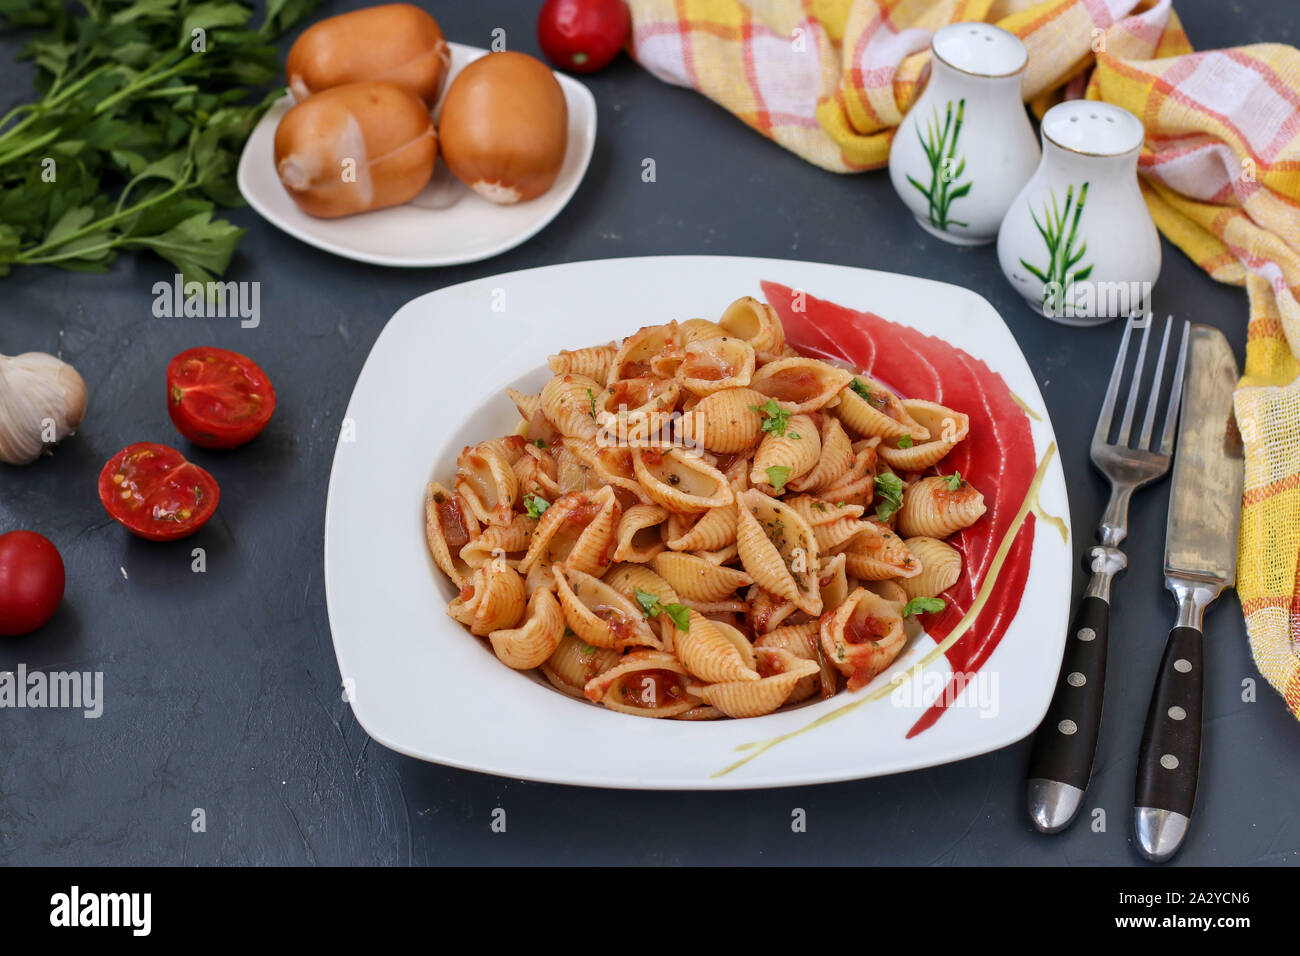 Conchiglie Italian pasta shells with cherry tomatoes and tomato sauce on dark background, horizontal orientation, closeup Stock Photo